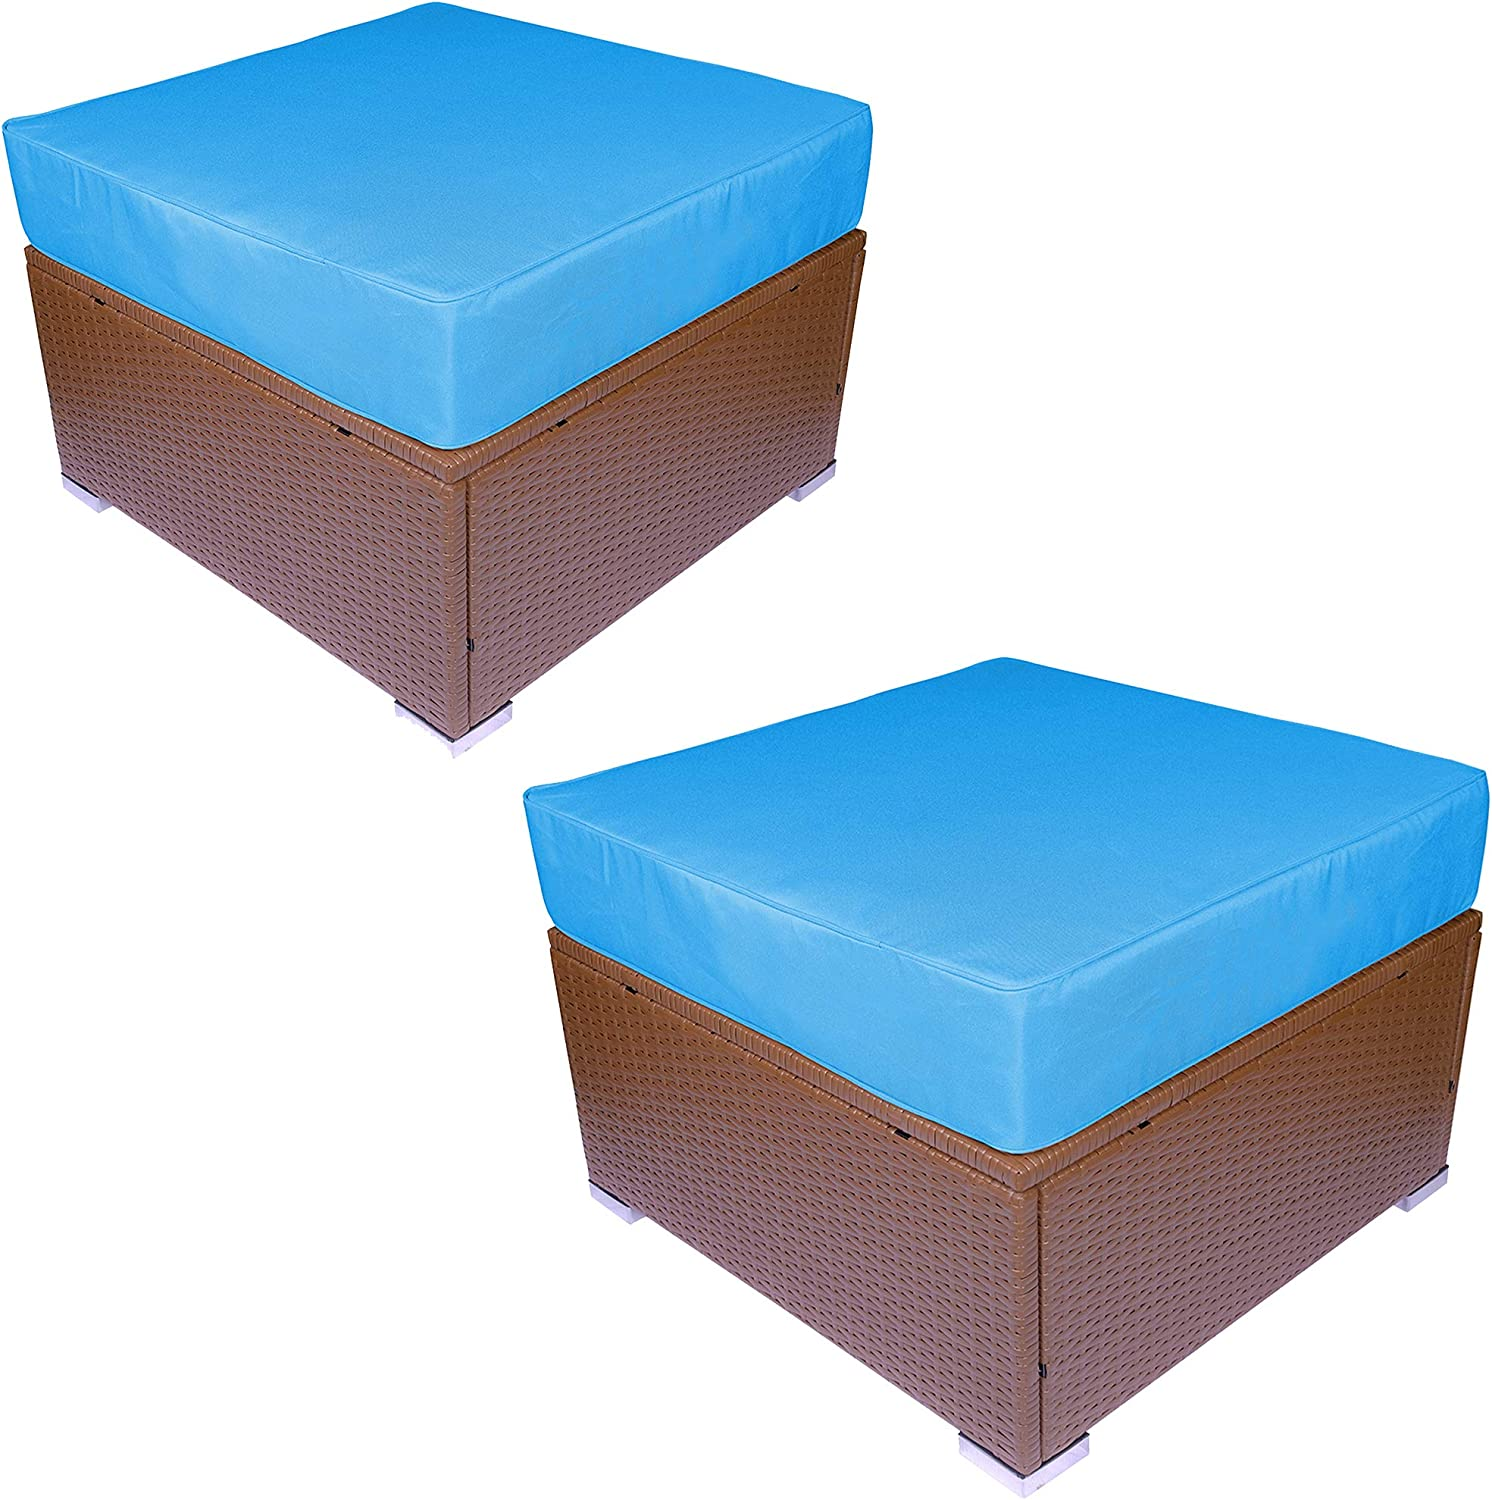 All Weather Rattan Wicker Ottoman Seat Blue Outdoor Footstool Footrest Seat w//Removable Cushions 6081-4006OT-2 Patio Rattan Furniture MCombo 2 Pieces Outdoor Patio Ottoman